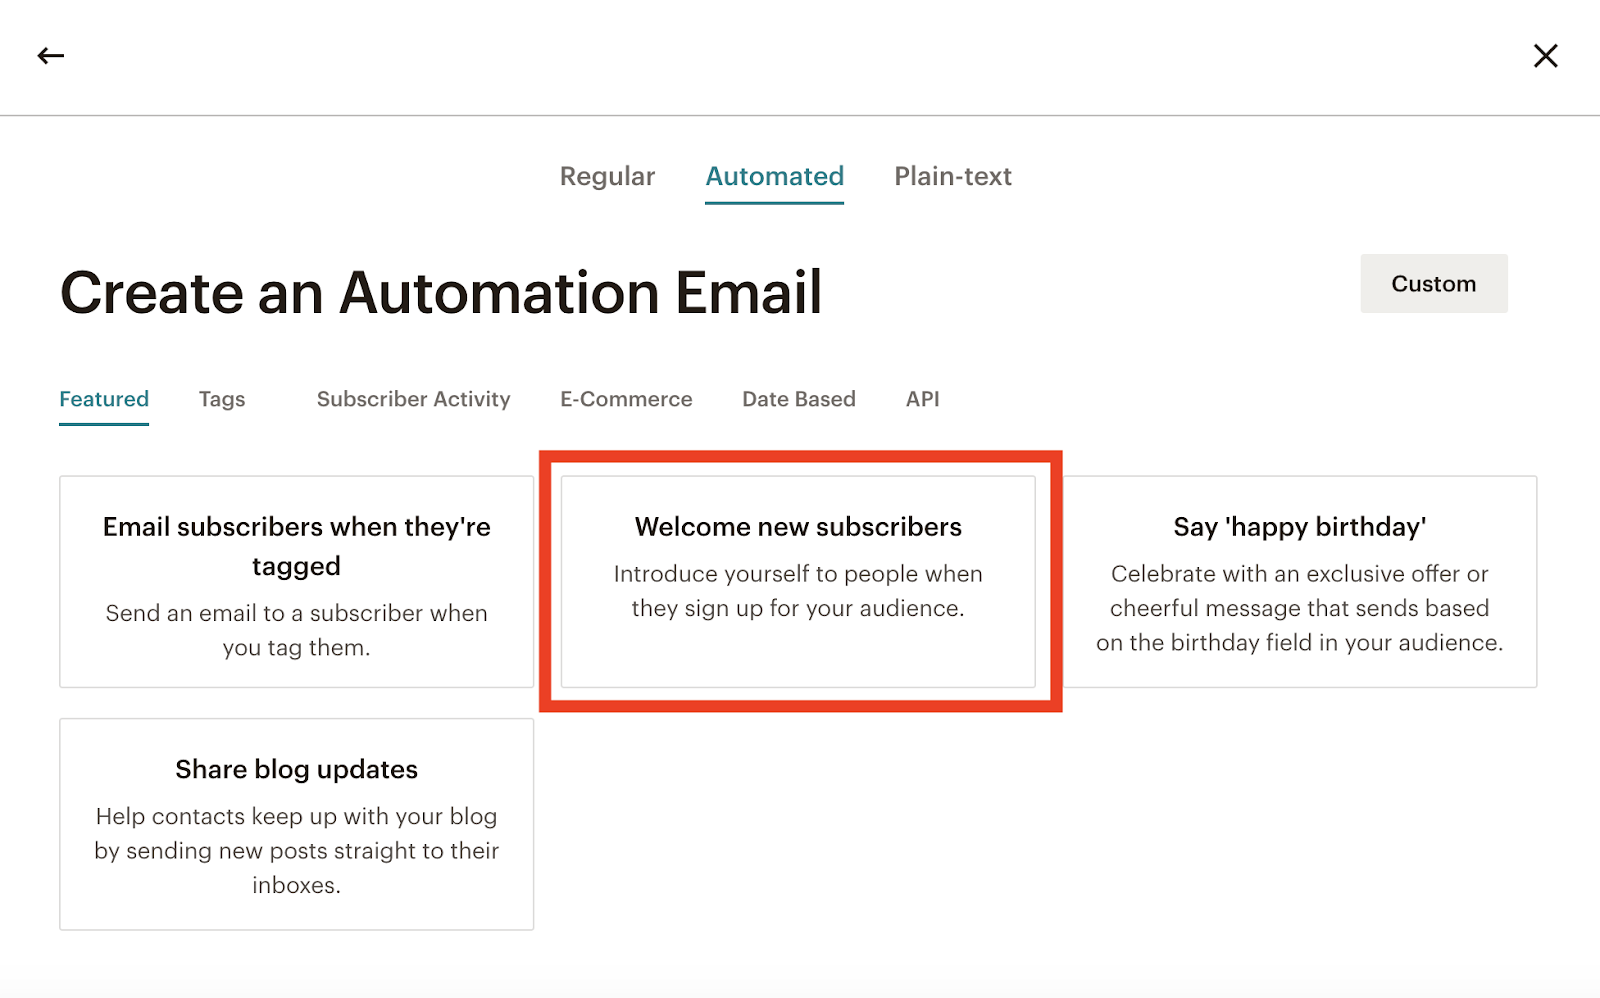 Screenshot of how to set up an automation email to welcome new subscribers